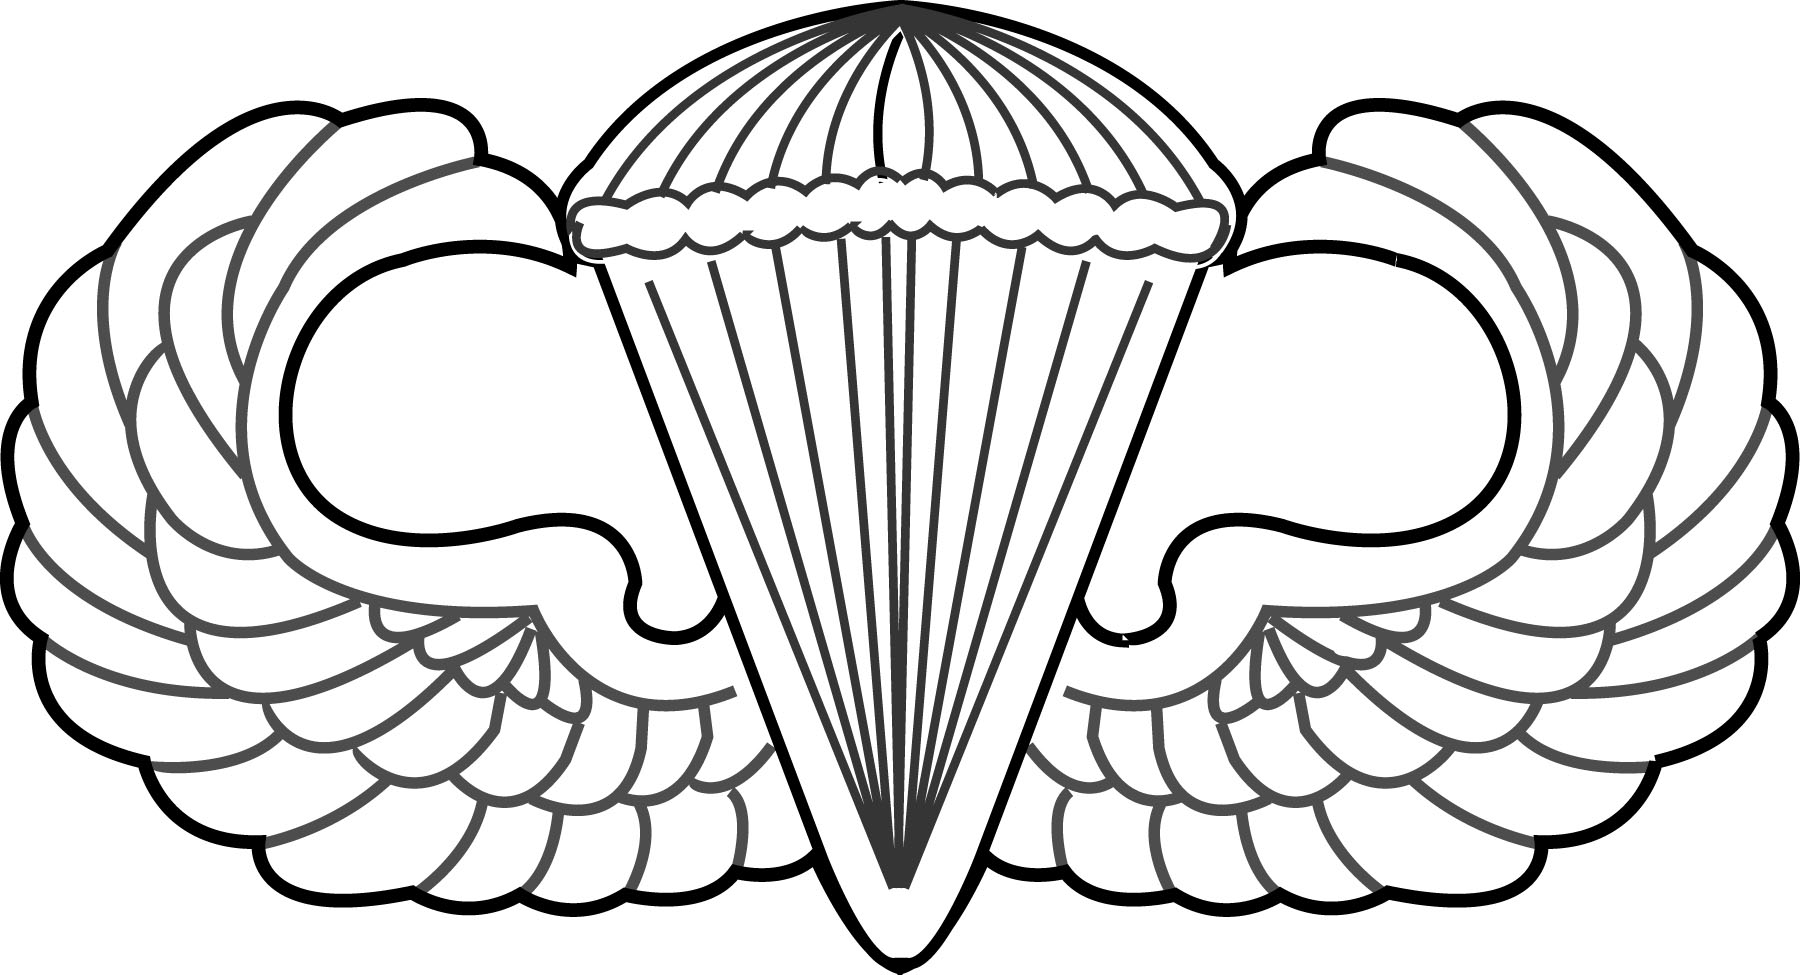 1800x975 Airborne Wings Clipart